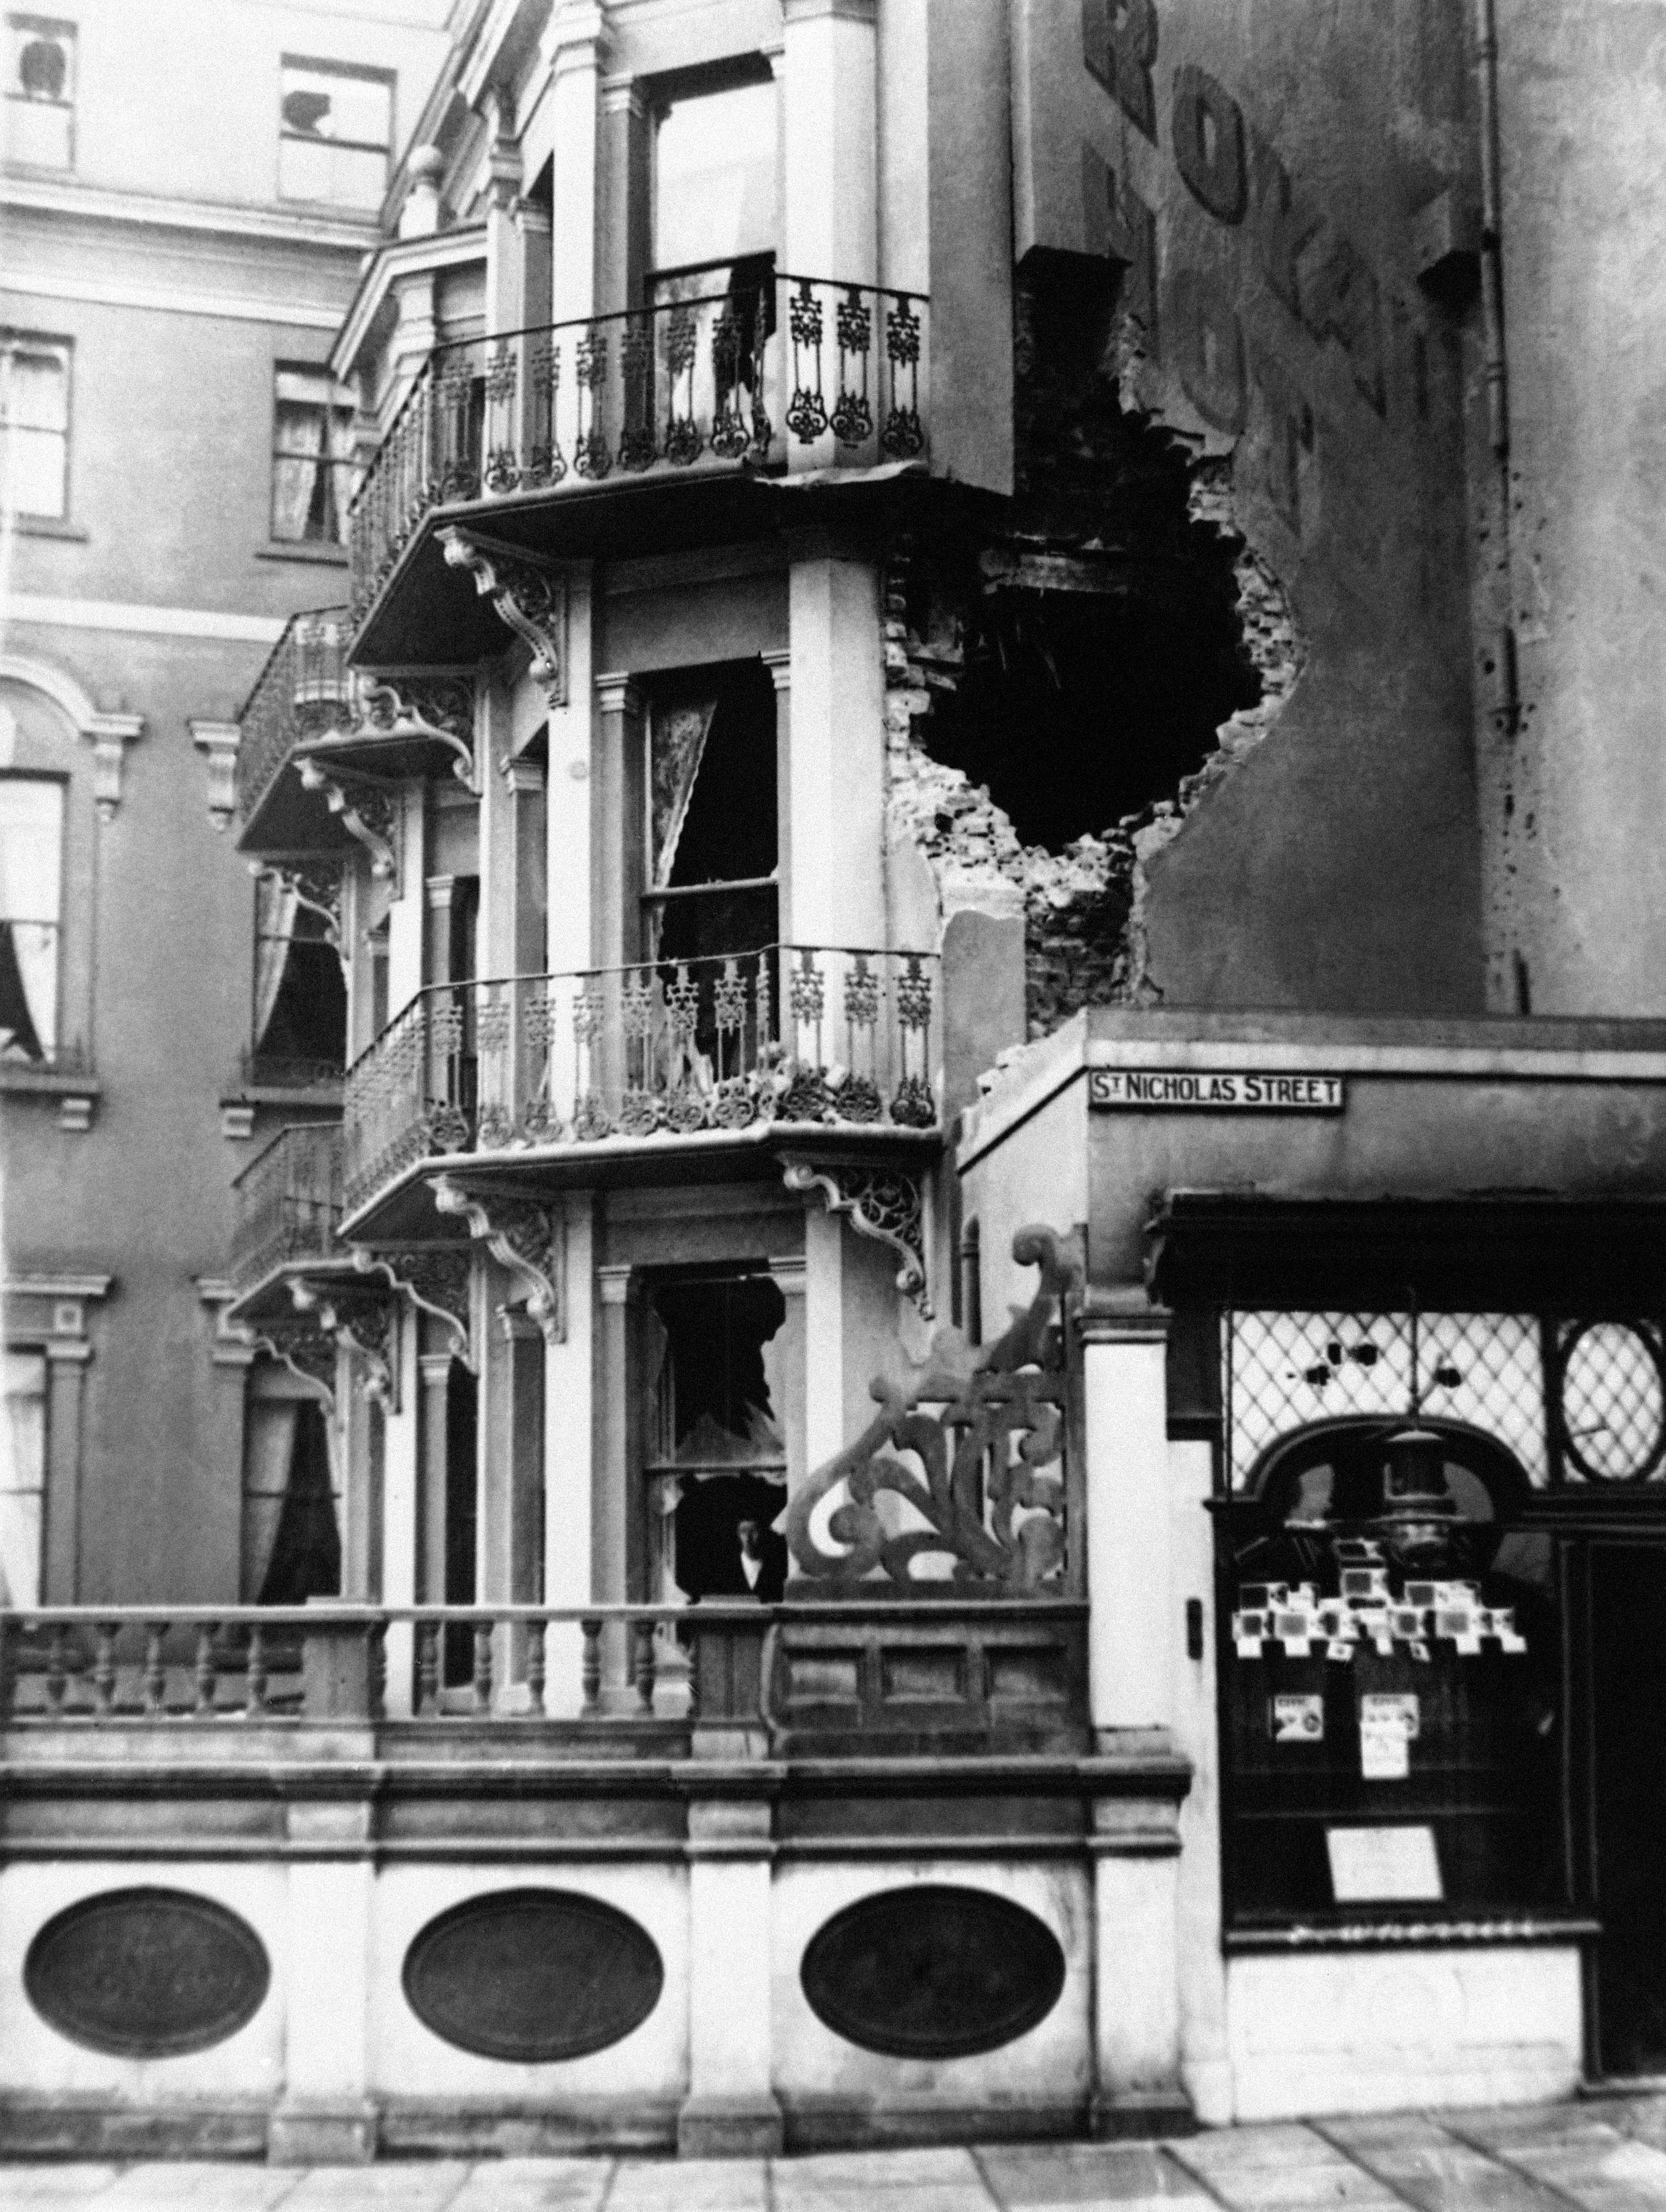 23 OF 100: In this December 1914 file photo, damage to the Royal Hotel in Scarborough, northern England, after a bombing raid.